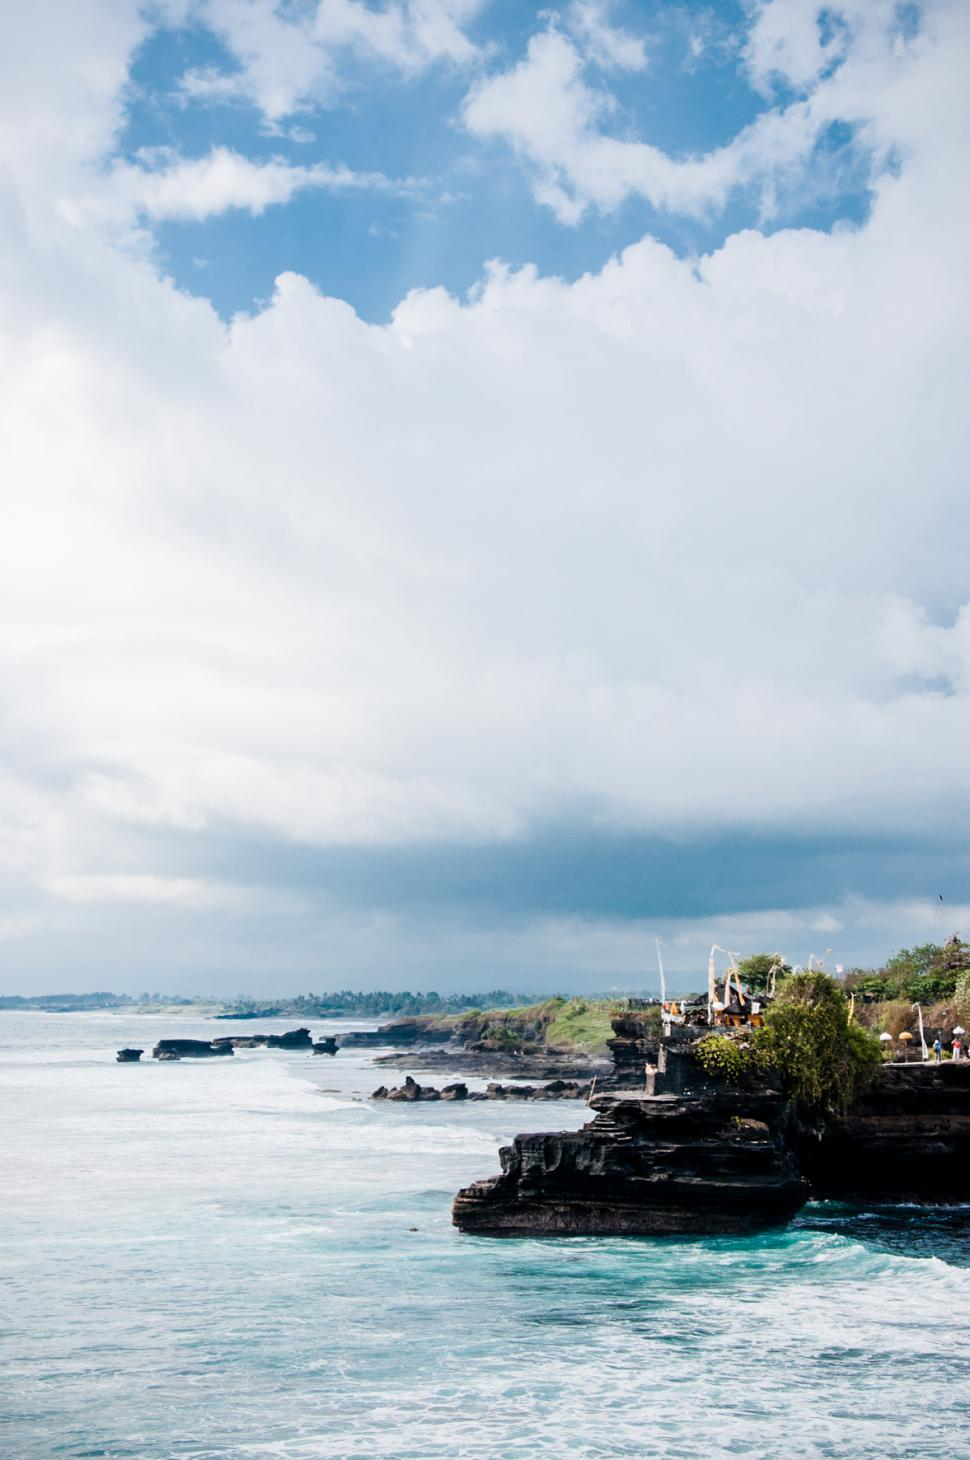 Download Free Stock HD Photo of Tanah Lot Temple on Sea in Bali Island Online